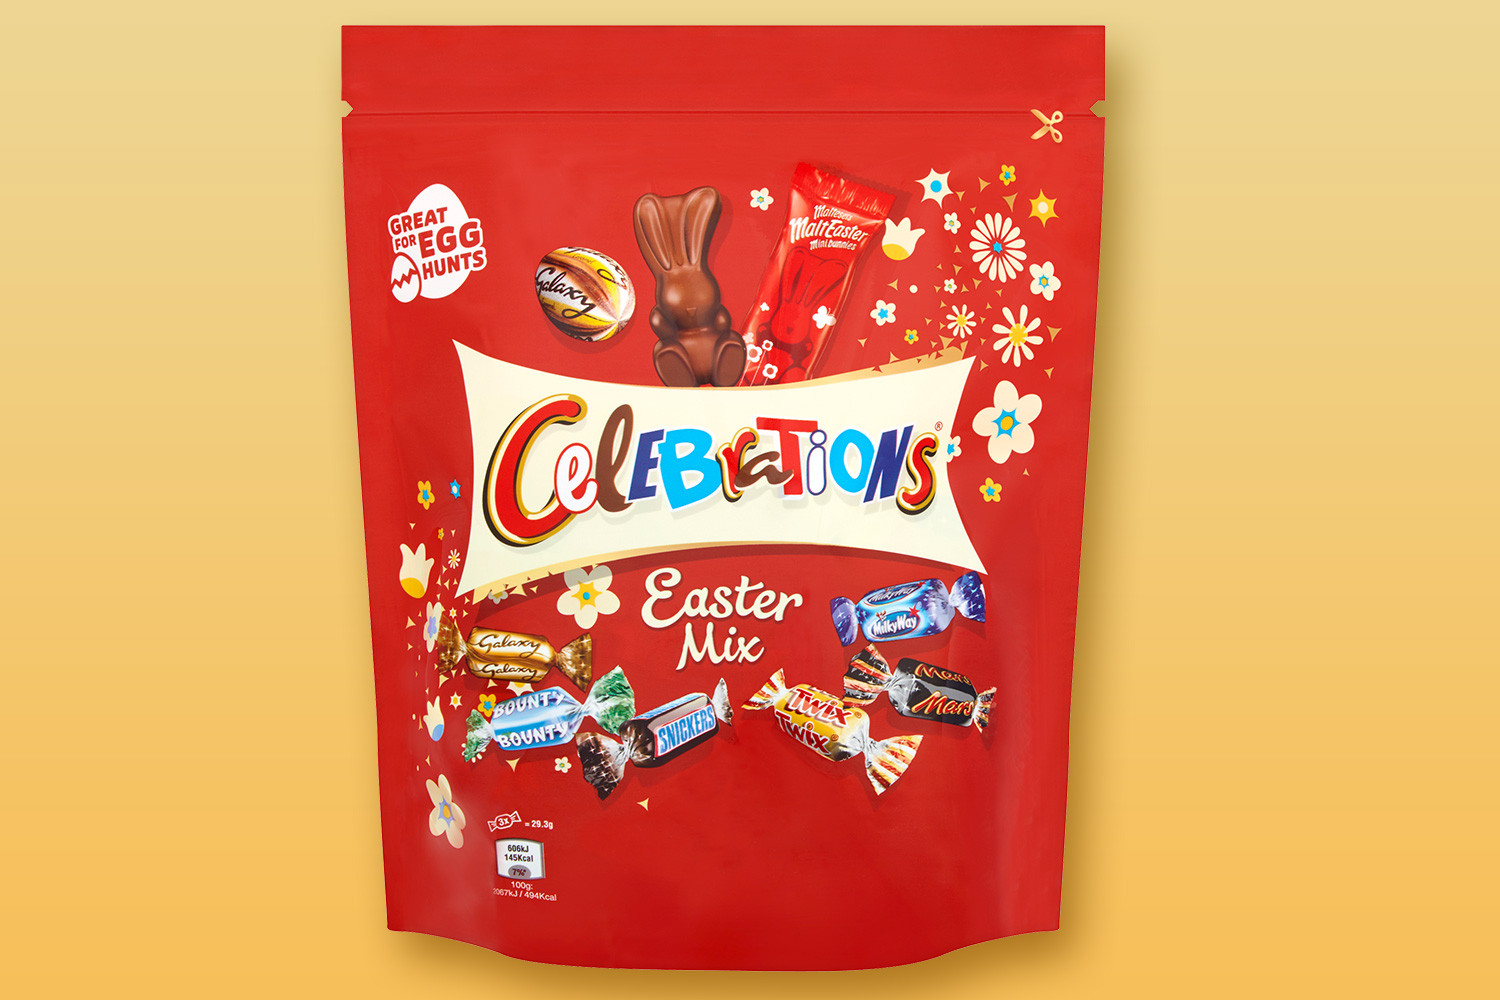 You can now get your hands on a Celebrations Easter Min at Morrisons and Tesco